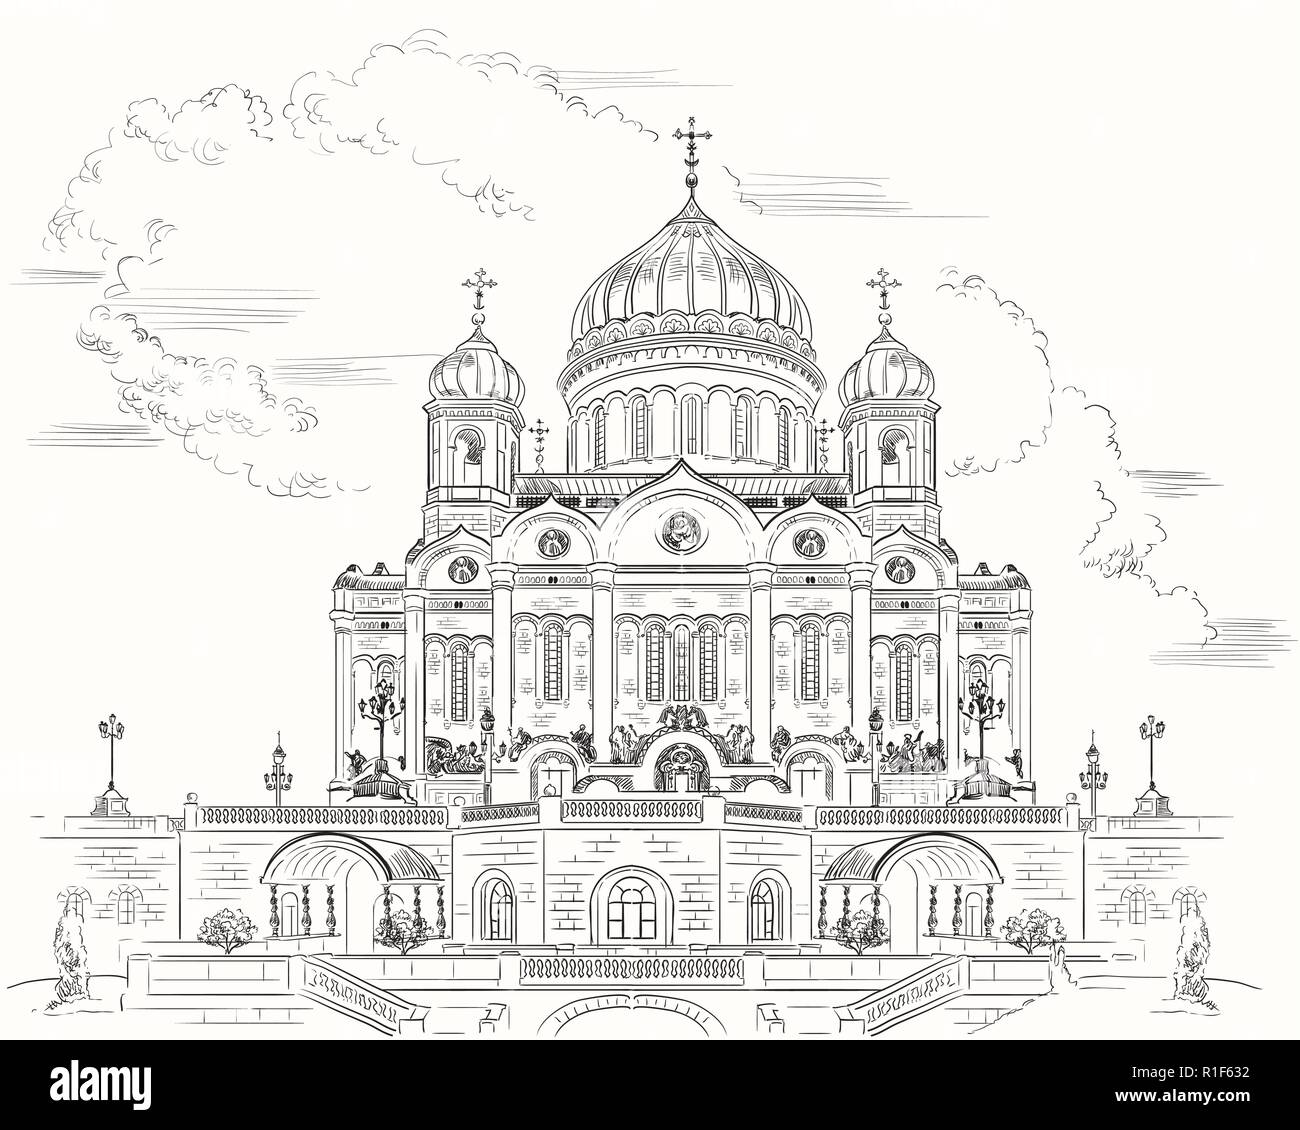 Cityscape of Cathedral of Christ the Saviour (Moscow, Russia) isolated vector hand drawing illustration in black color on white background - Stock Image